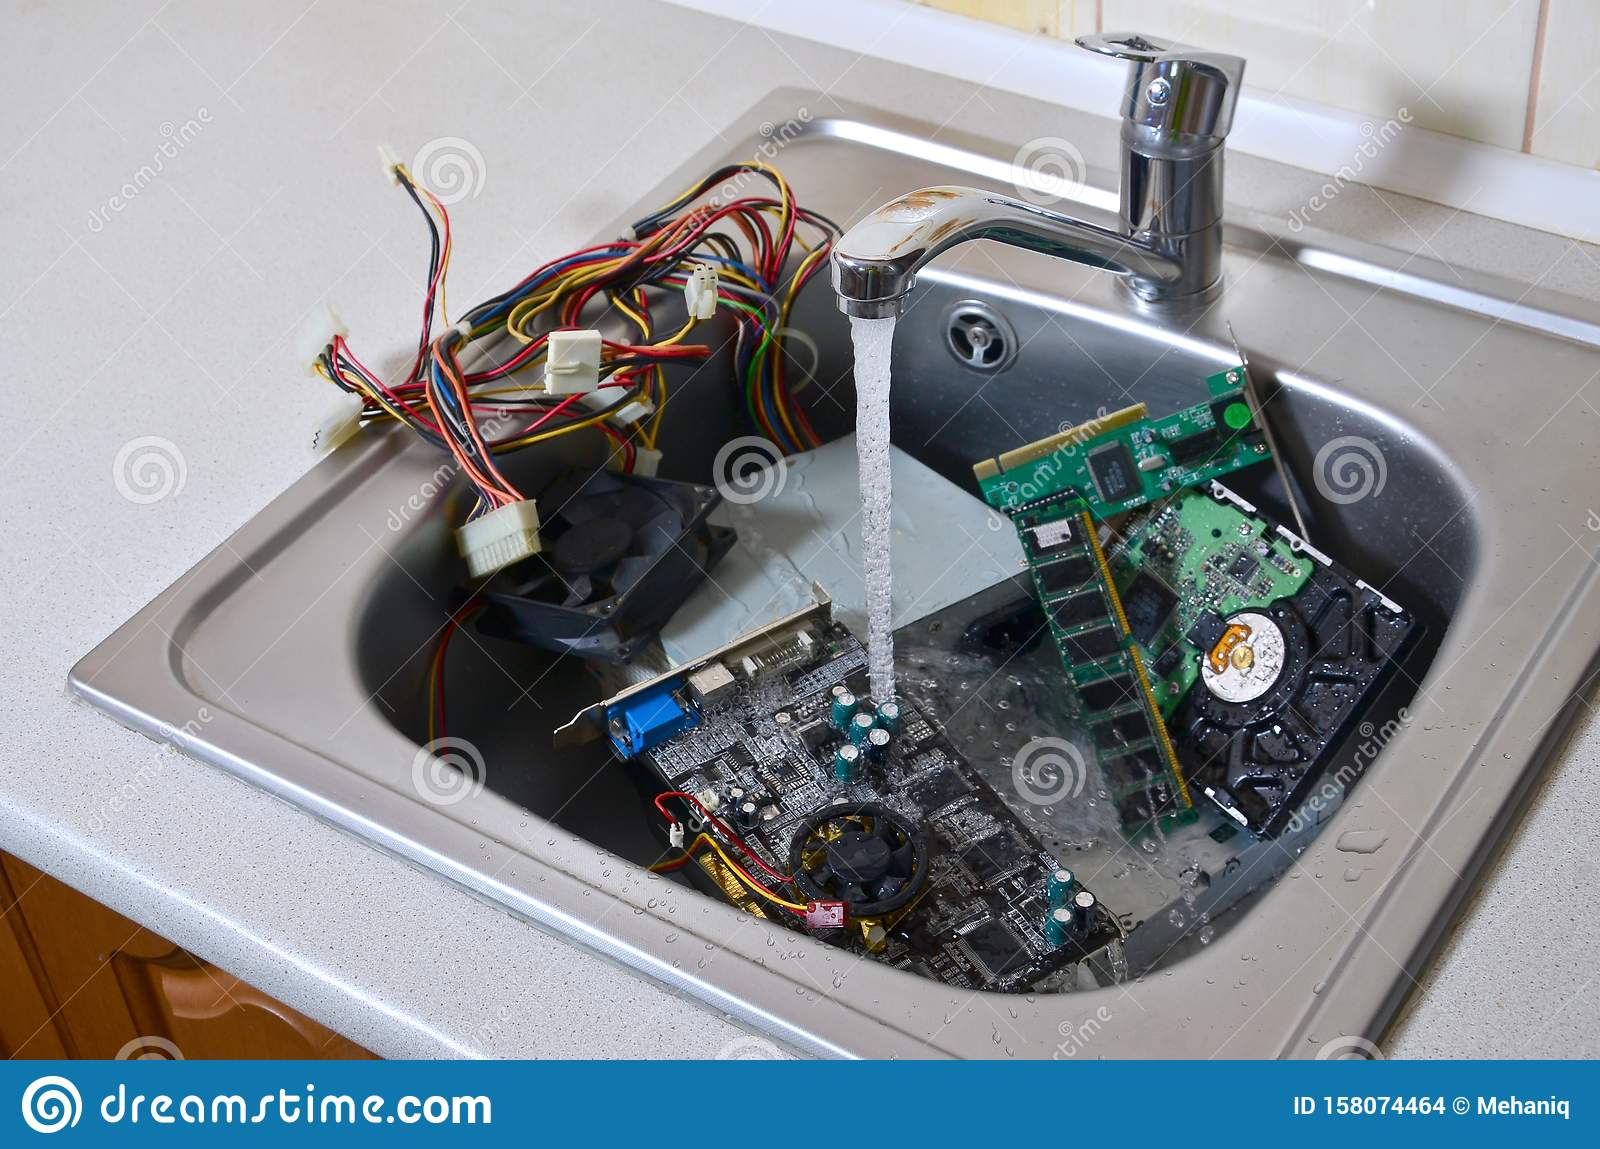 Hardware In Kitchen Sink Under The Water Flow Computer Cleaning Metaphoric Concept Stock Photo Image Of Dishes Cool 158074464